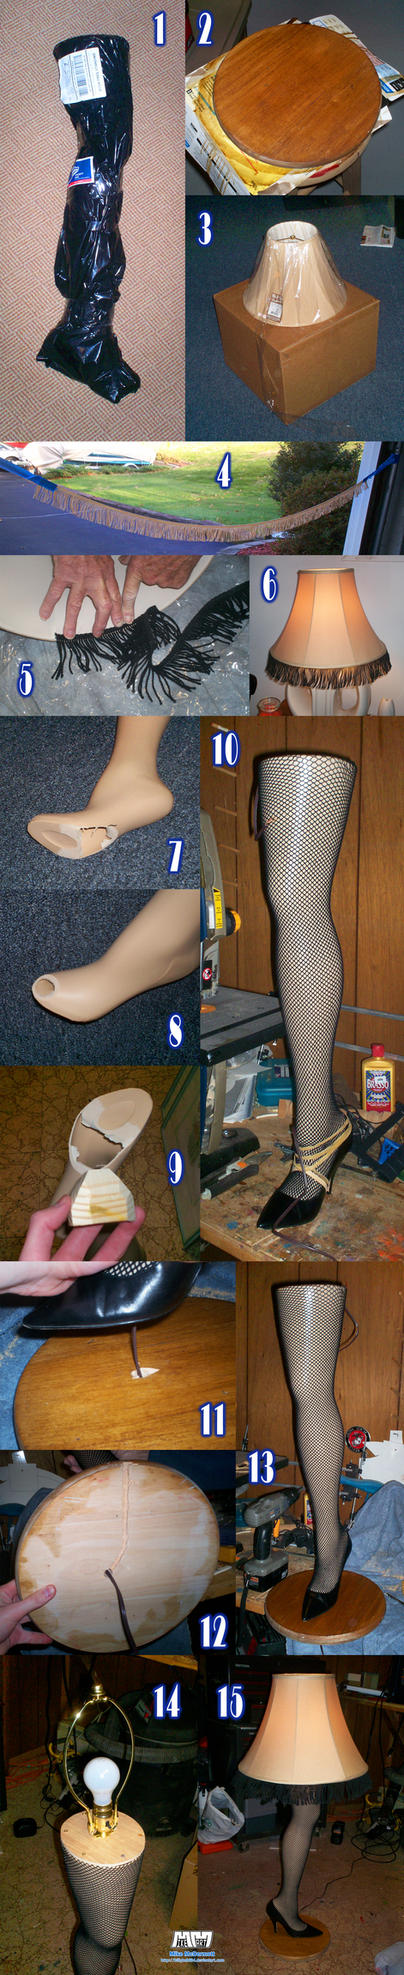 Leg Lamp In-Progress Shots by billybob884